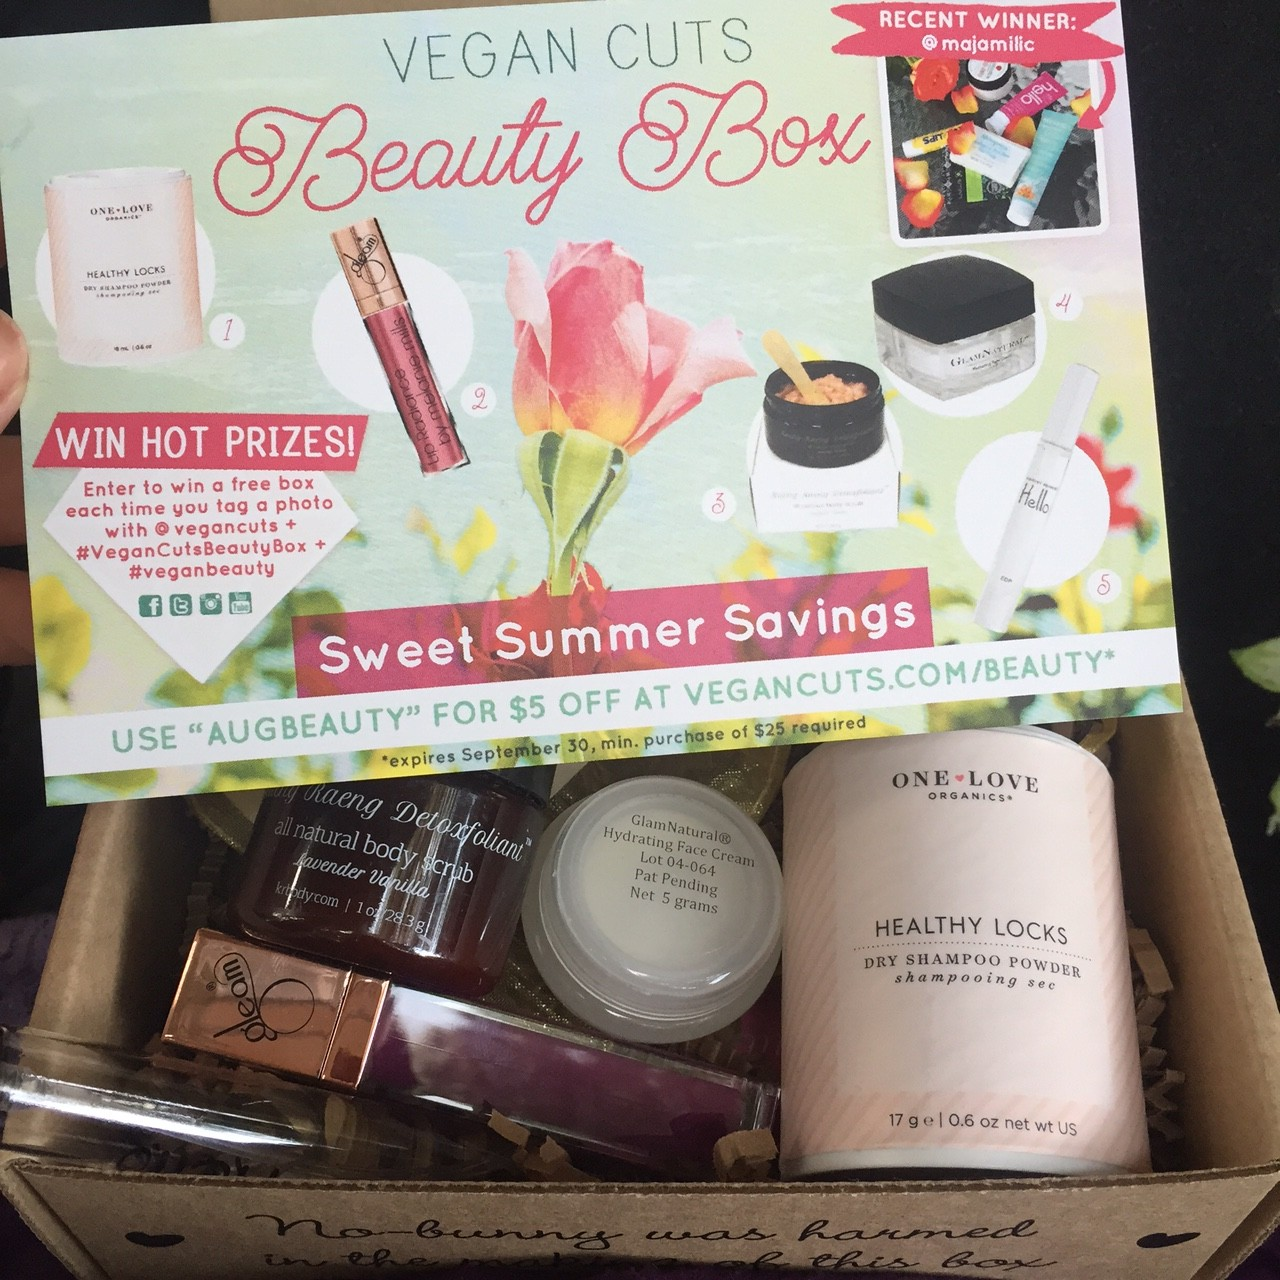 August 2015 Vegan Cuts Beauty Box Review Vegan Beauty Review